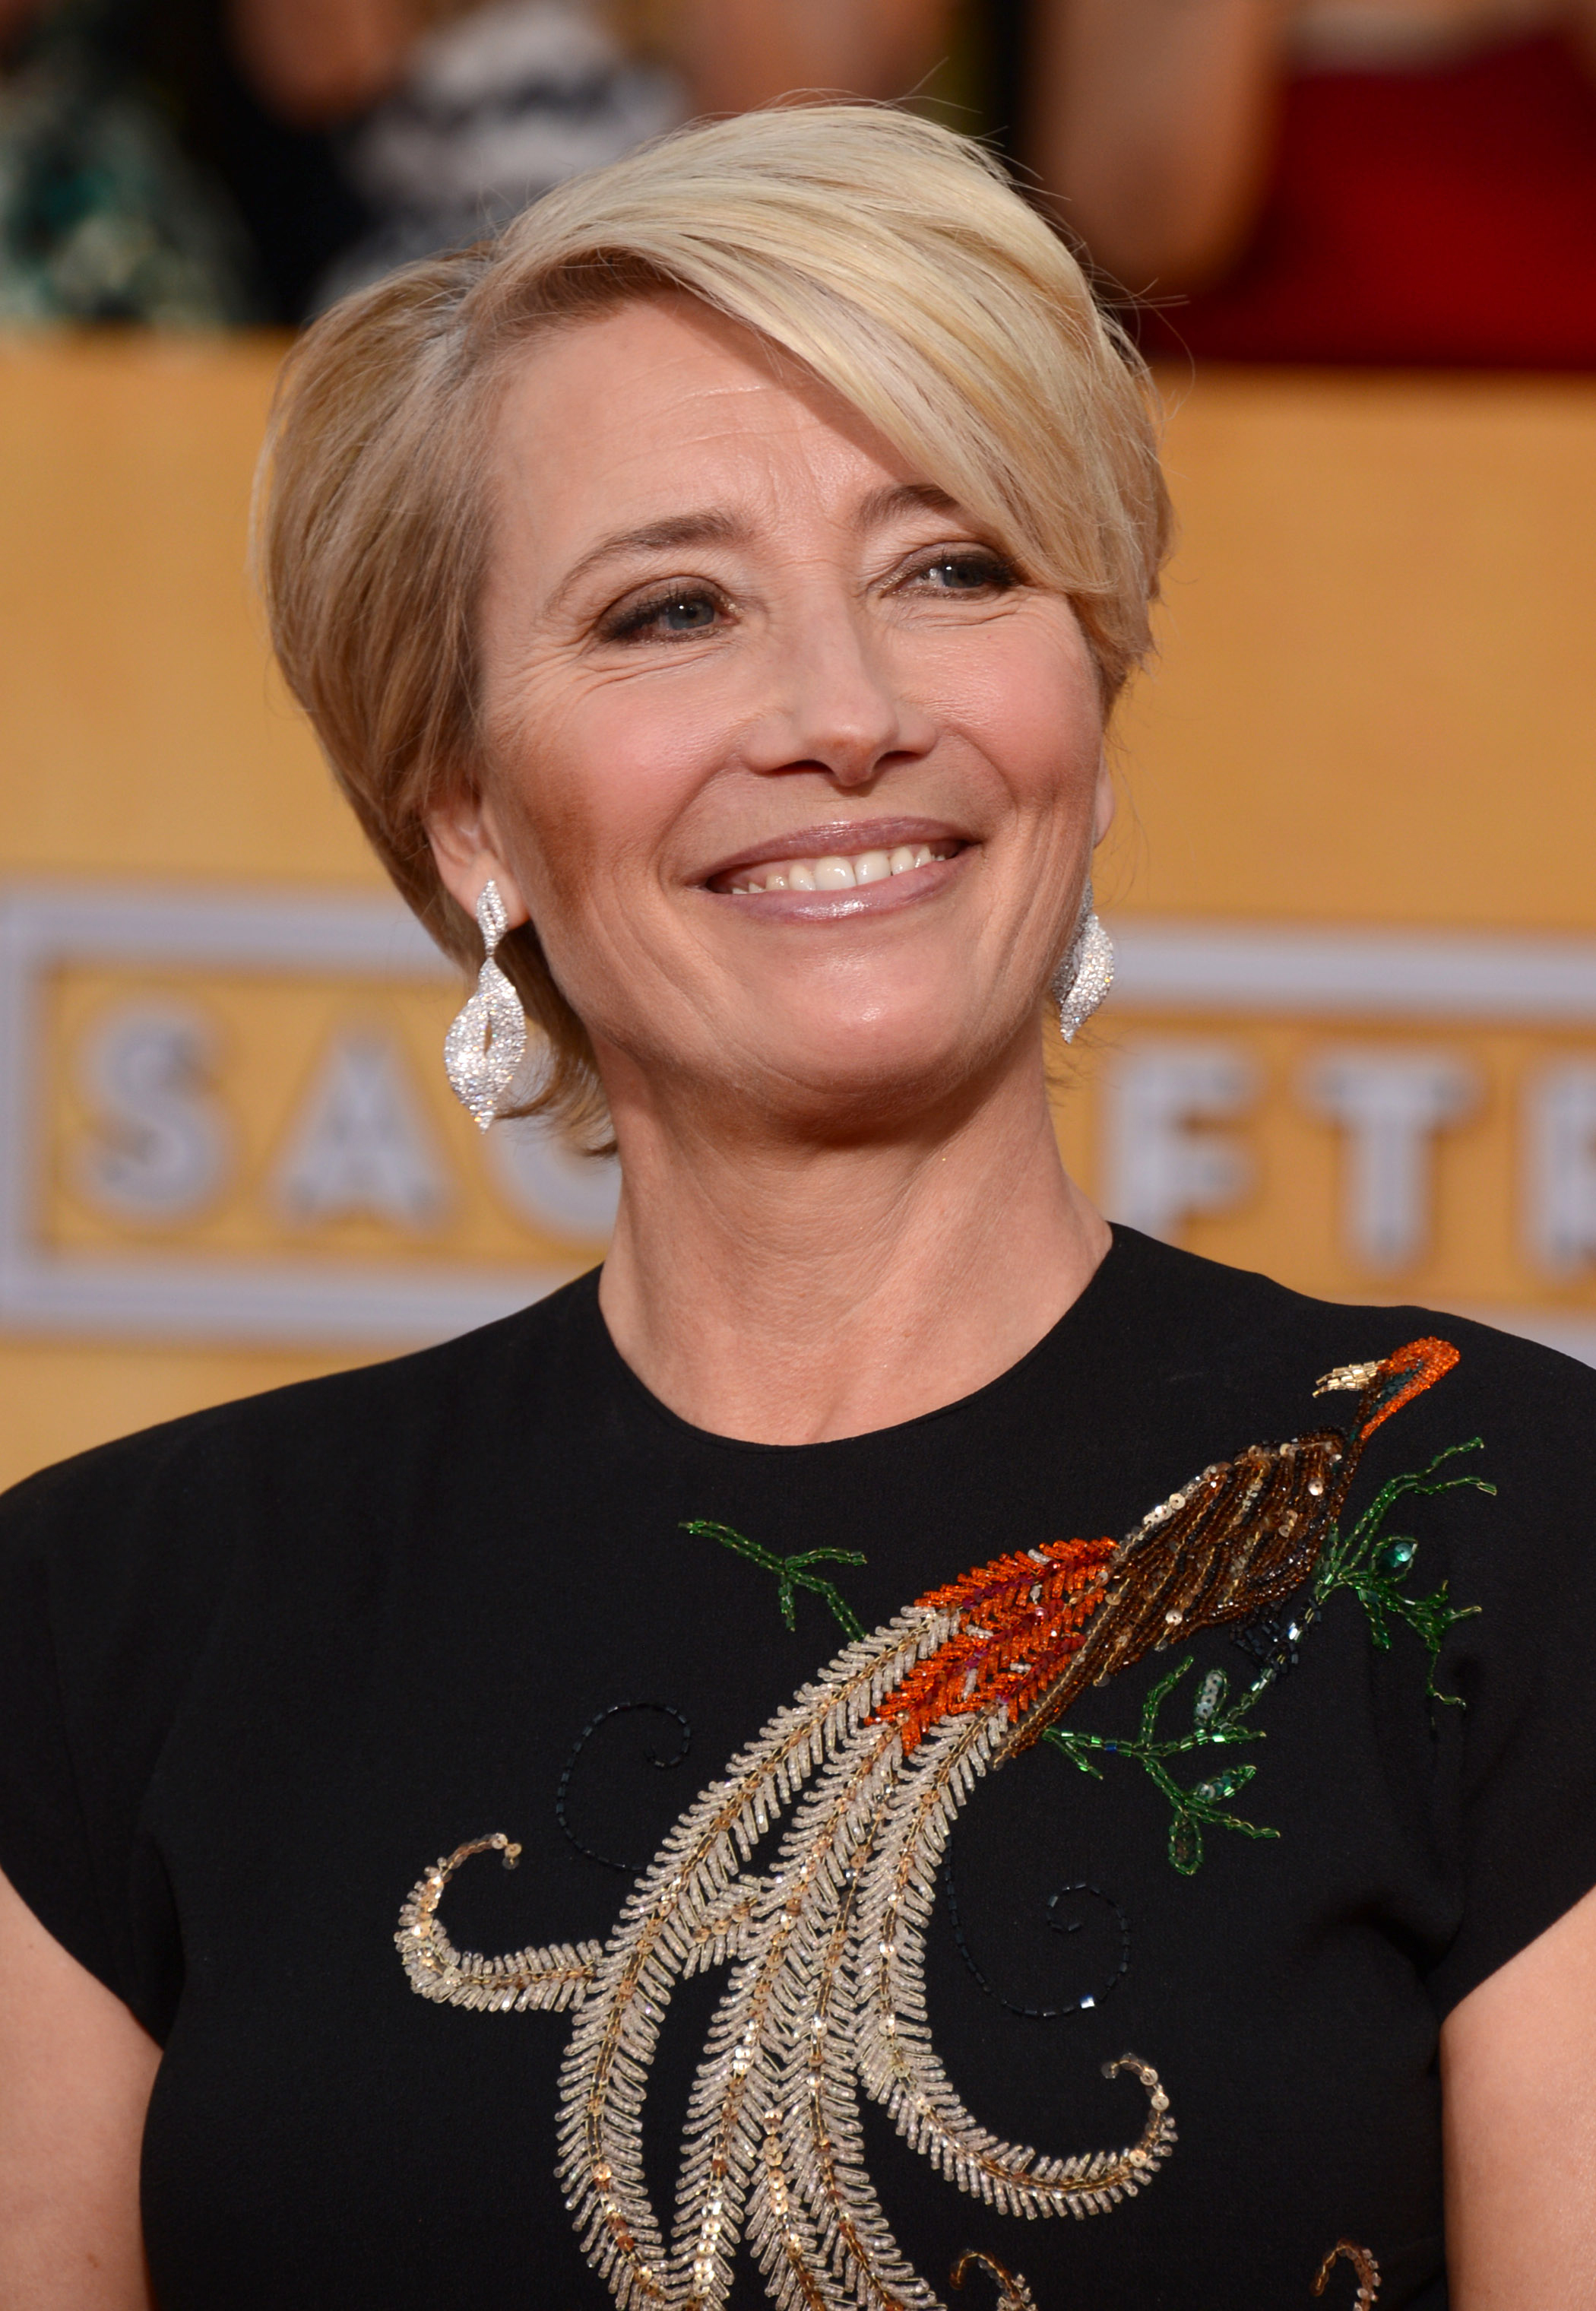 Emma Thompson arrives at the 20th annual Screen Actors Guild Awards at the Shrine Auditorium on Jan. 18, 2014, in Los Angeles.